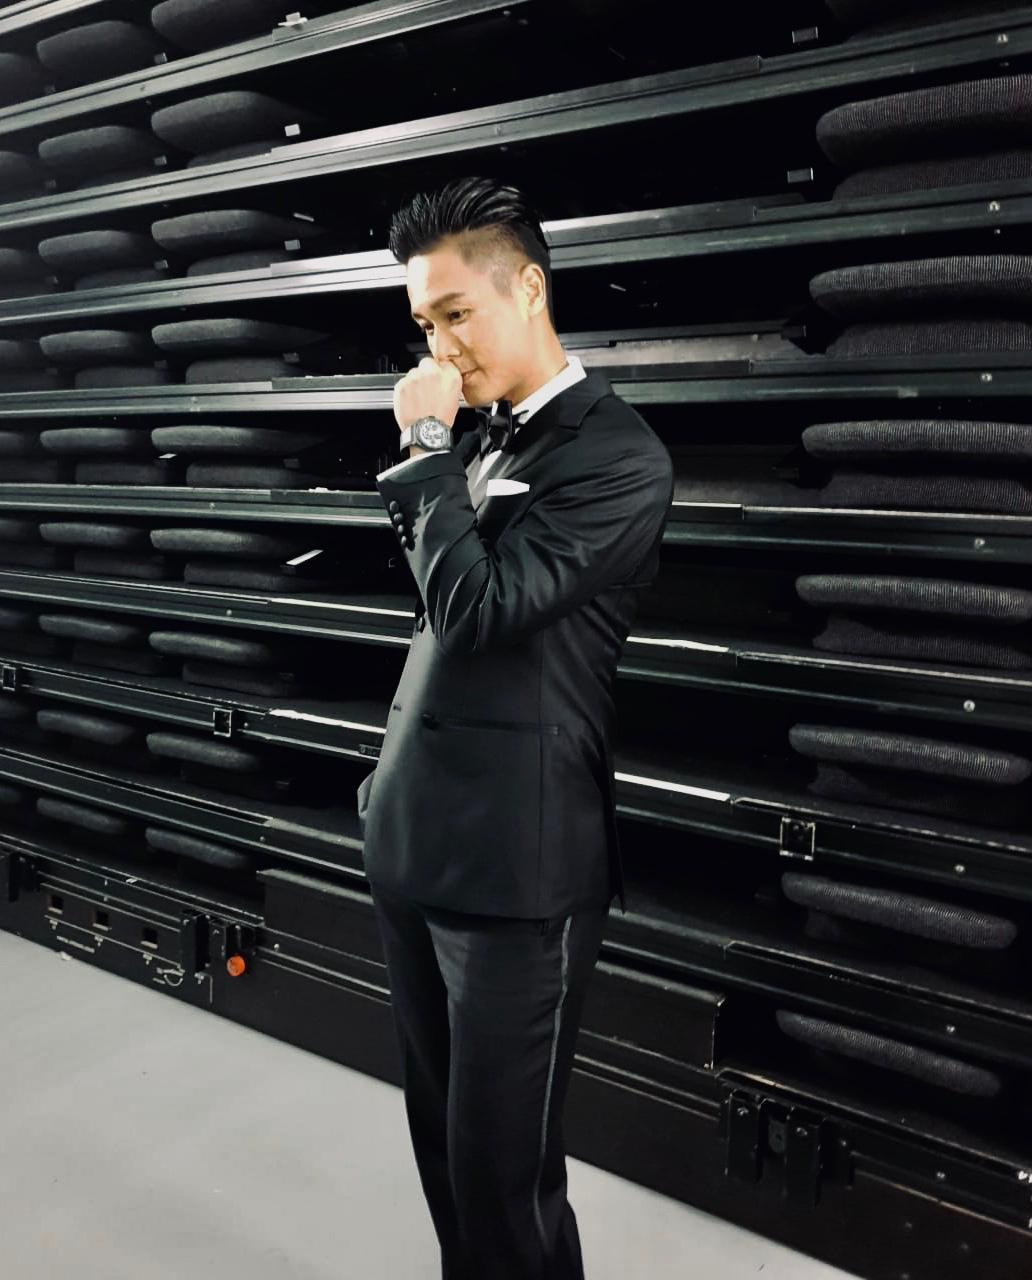 Made Suits X Andie Chen for star-awards-2019---walk-of-fame-红星大奖2019---星光大道 side.jpeg